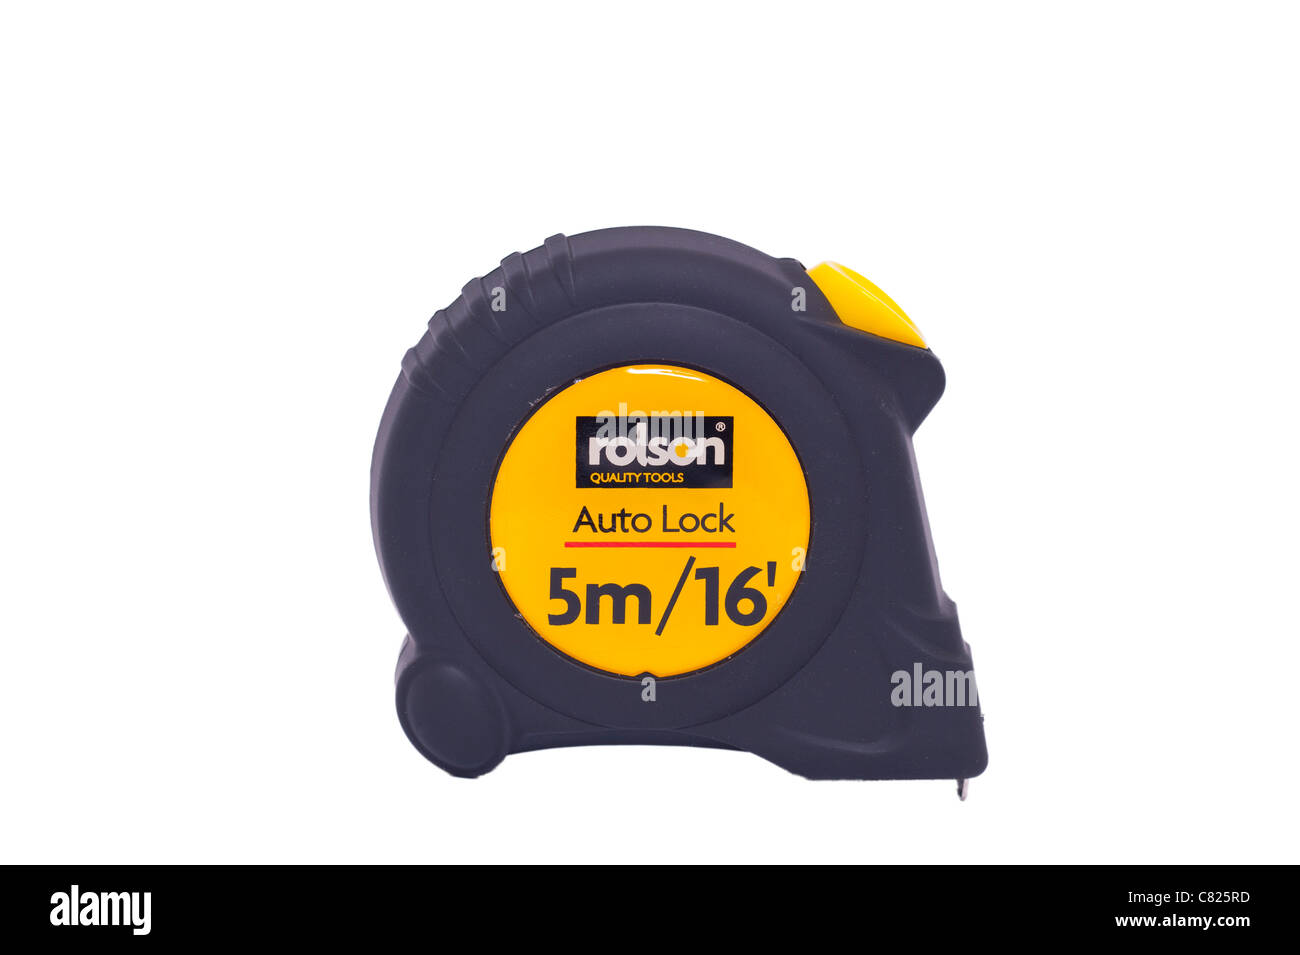 A rolson 5 metre tape measure on a white background - Stock Image